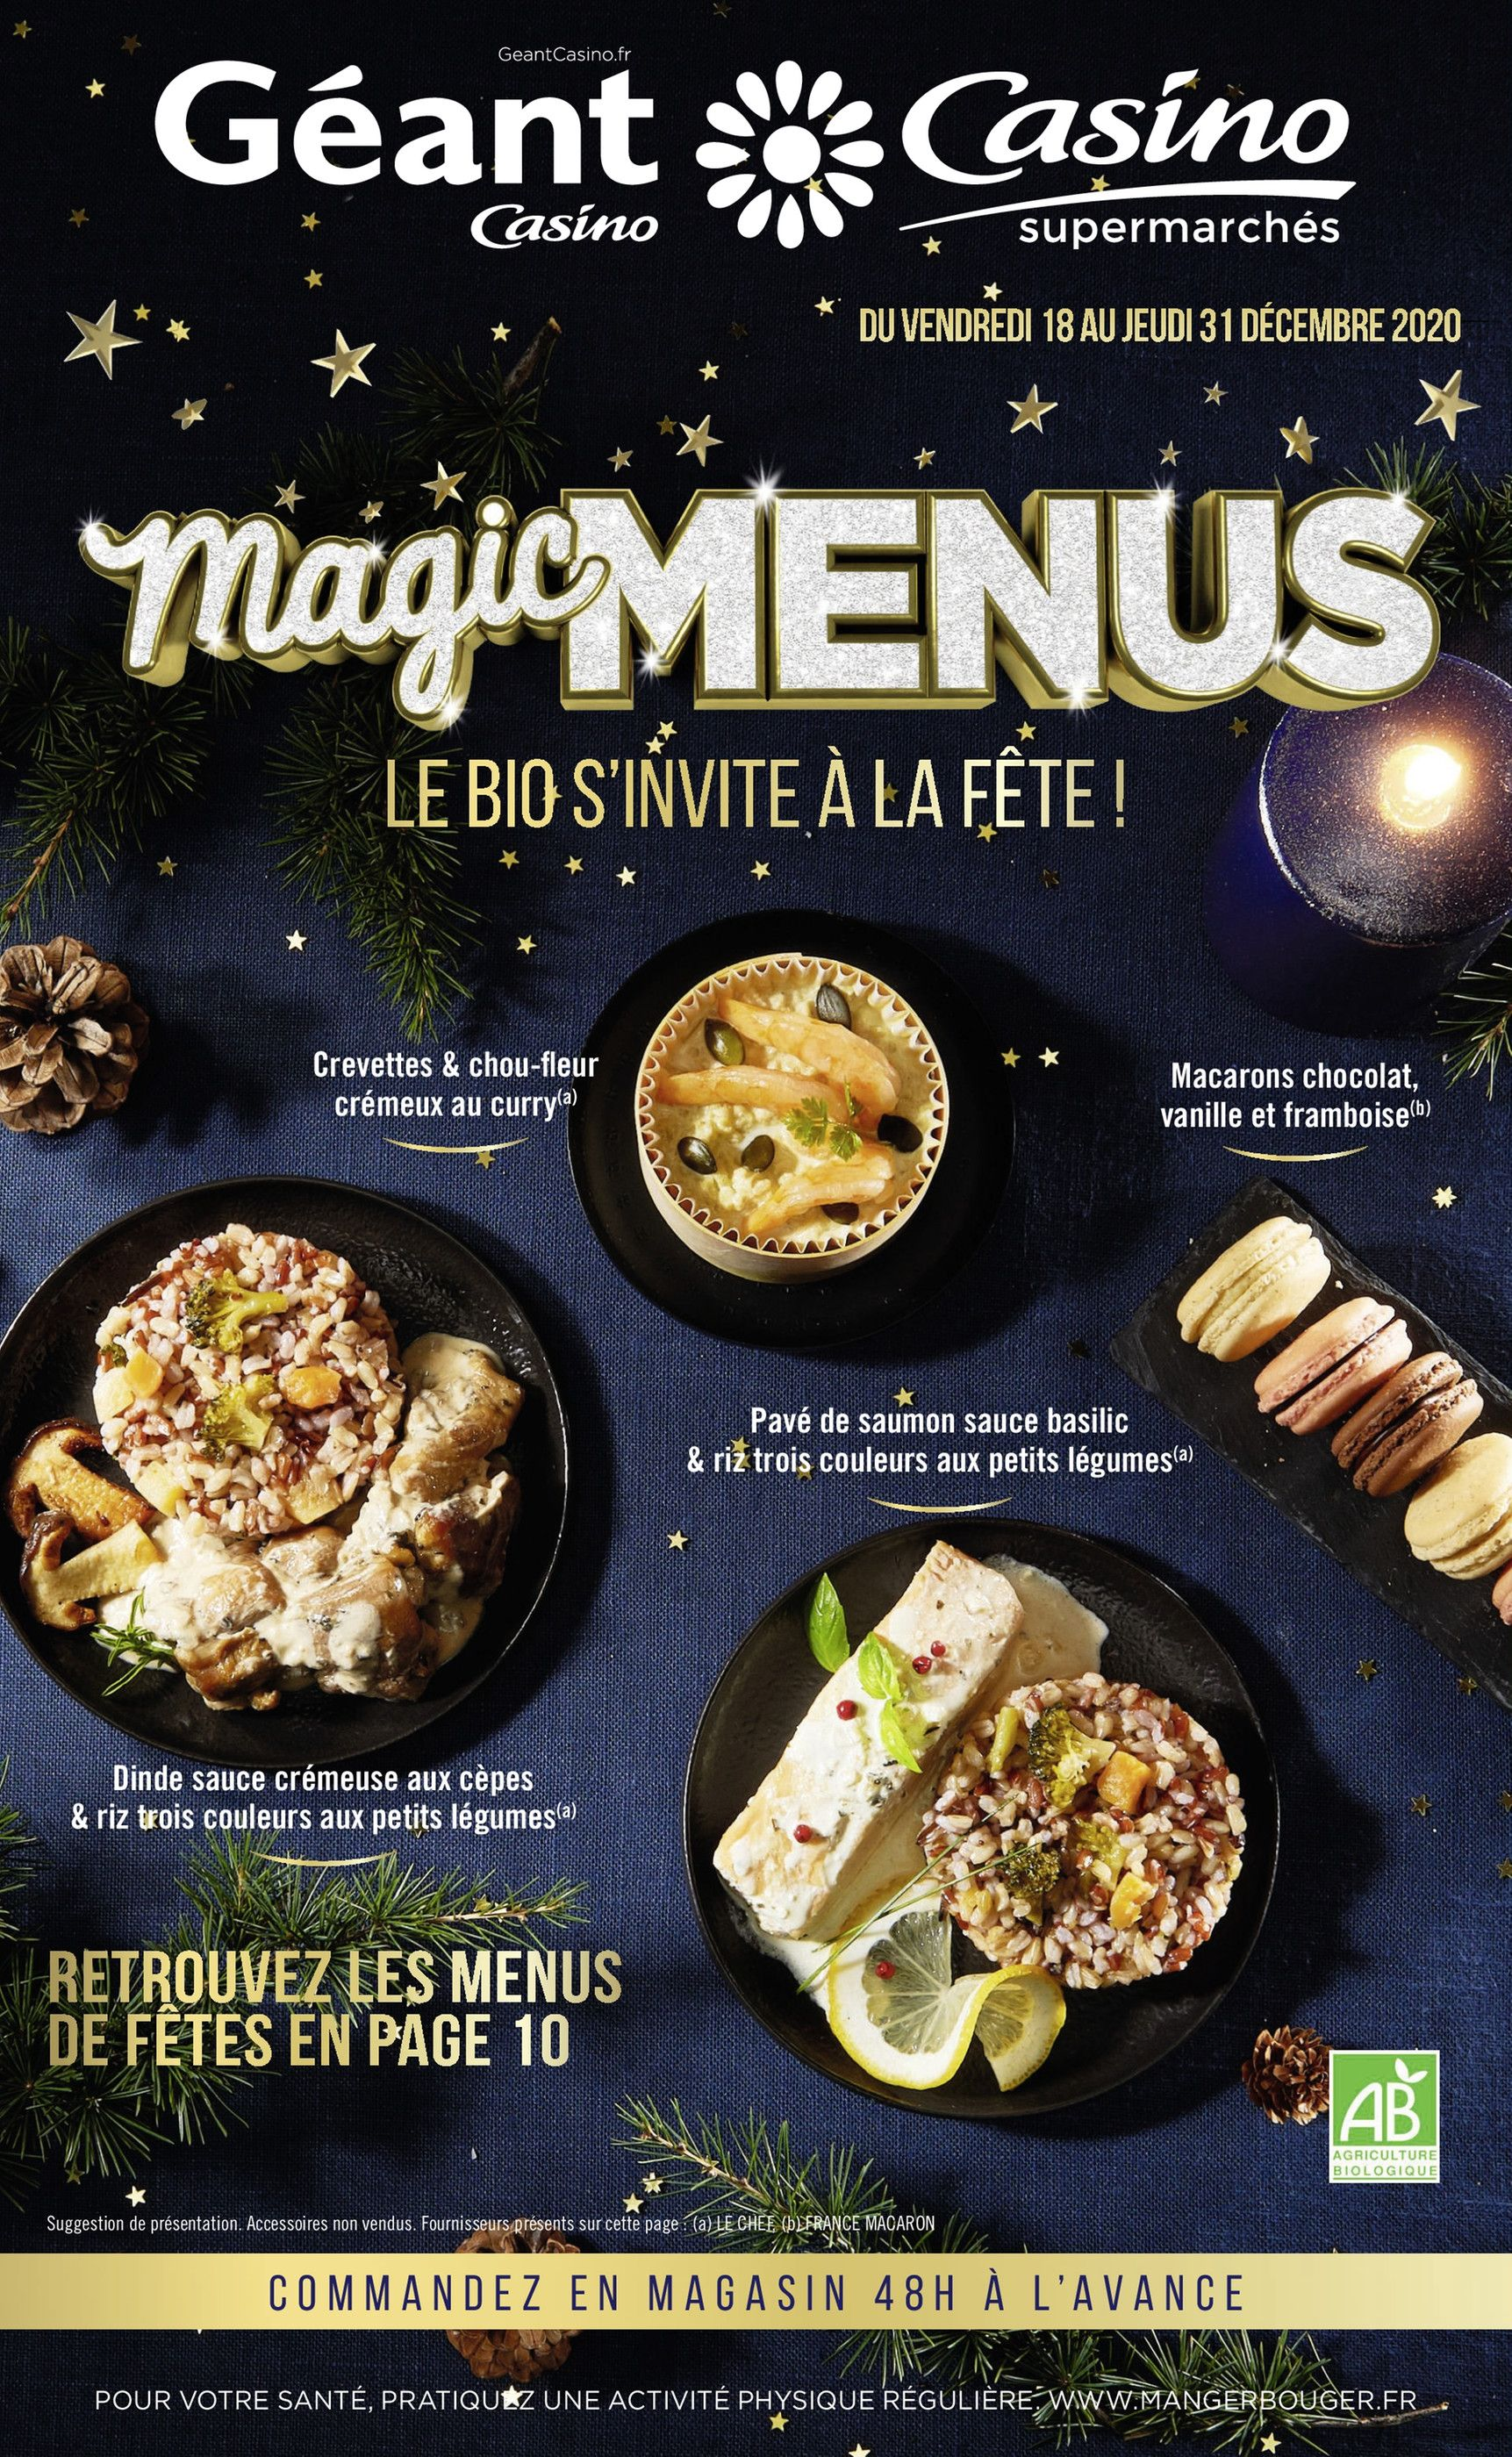 Magic menus